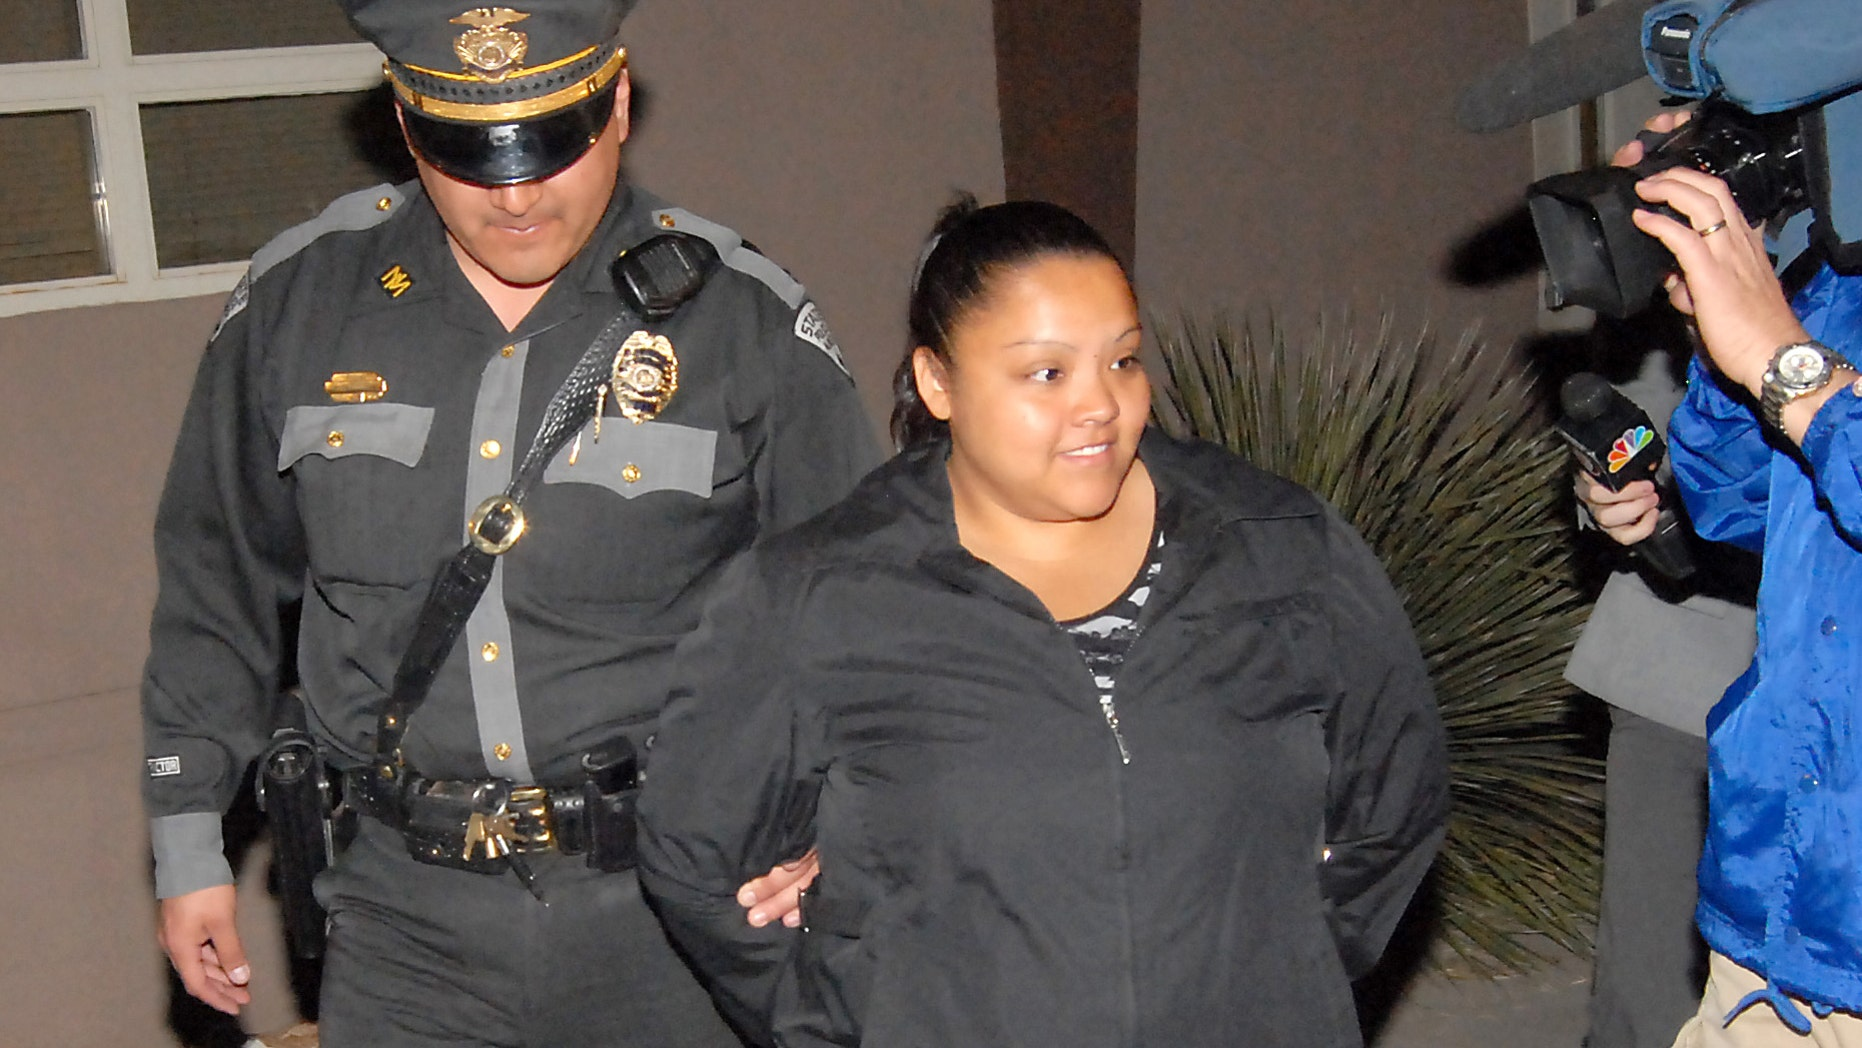 Priscilla Morales, secretary for former Sunland Park city councilor Dario Hernandez, is handcuffed and escorted into a police car by New Mexico State Police officer Raul Robles on Tuesday just as polls were closing in Sunland Park, N.M. Morales is the fourth arrest in conection with alleged voter fraud. (AP PHOTO/Las Cruces Sun-News, Robin Zielinski)